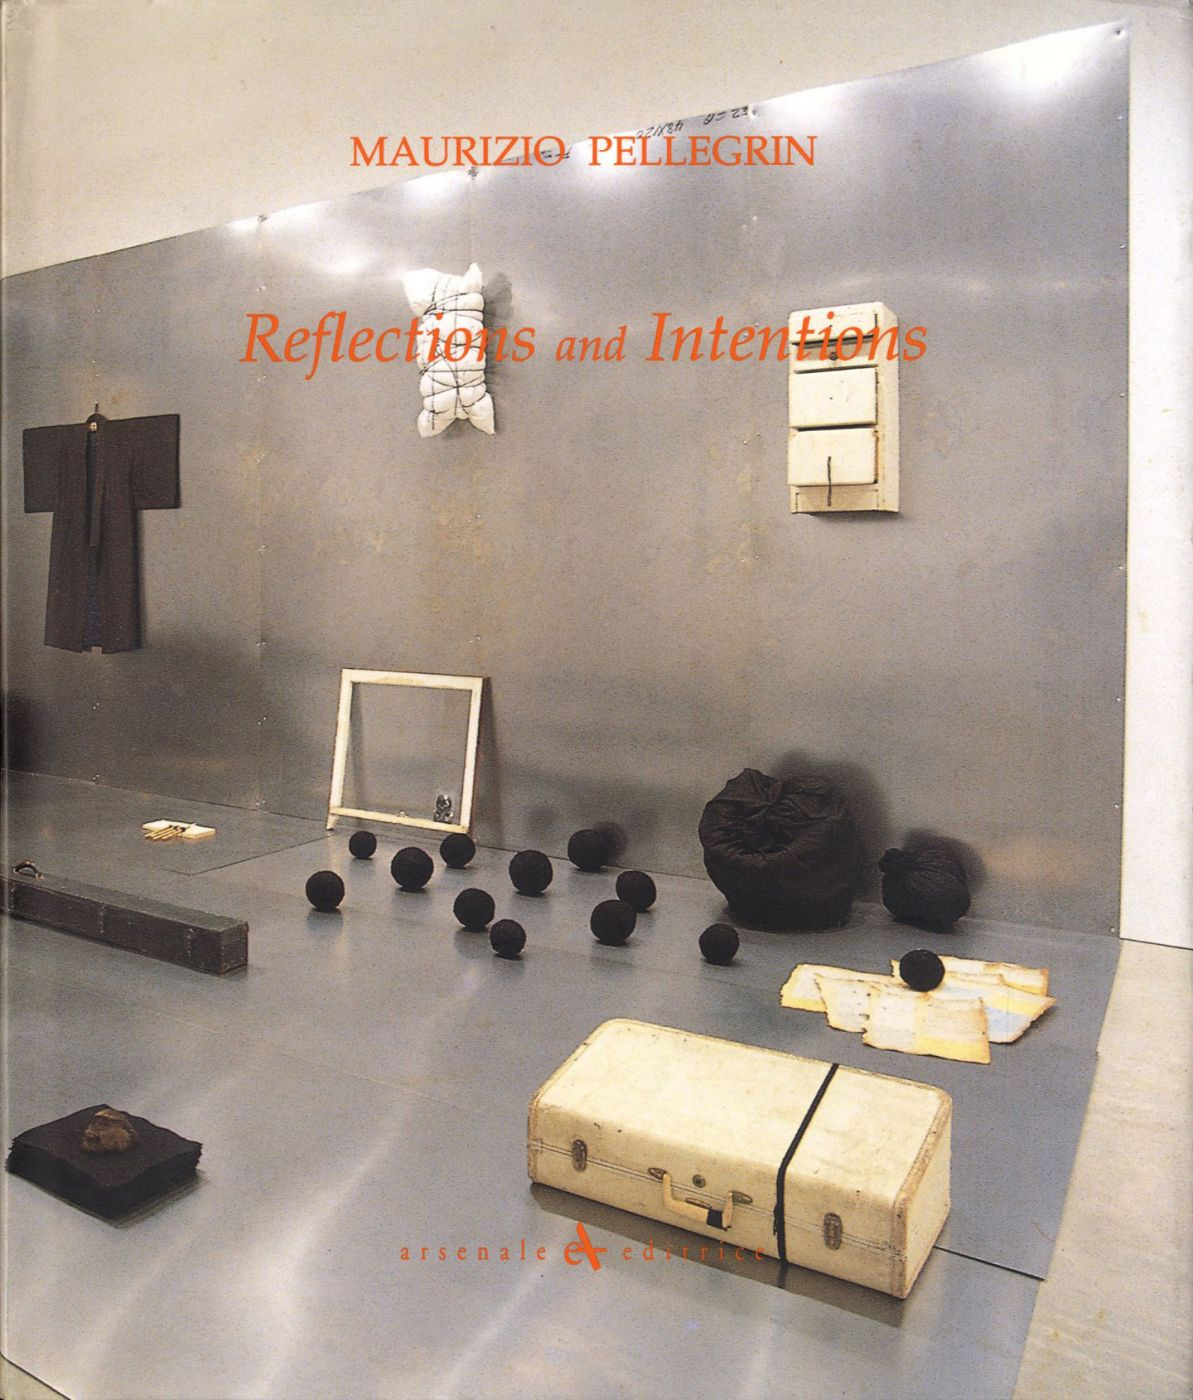 Maurizio Pellegrin: Relections and Intentions